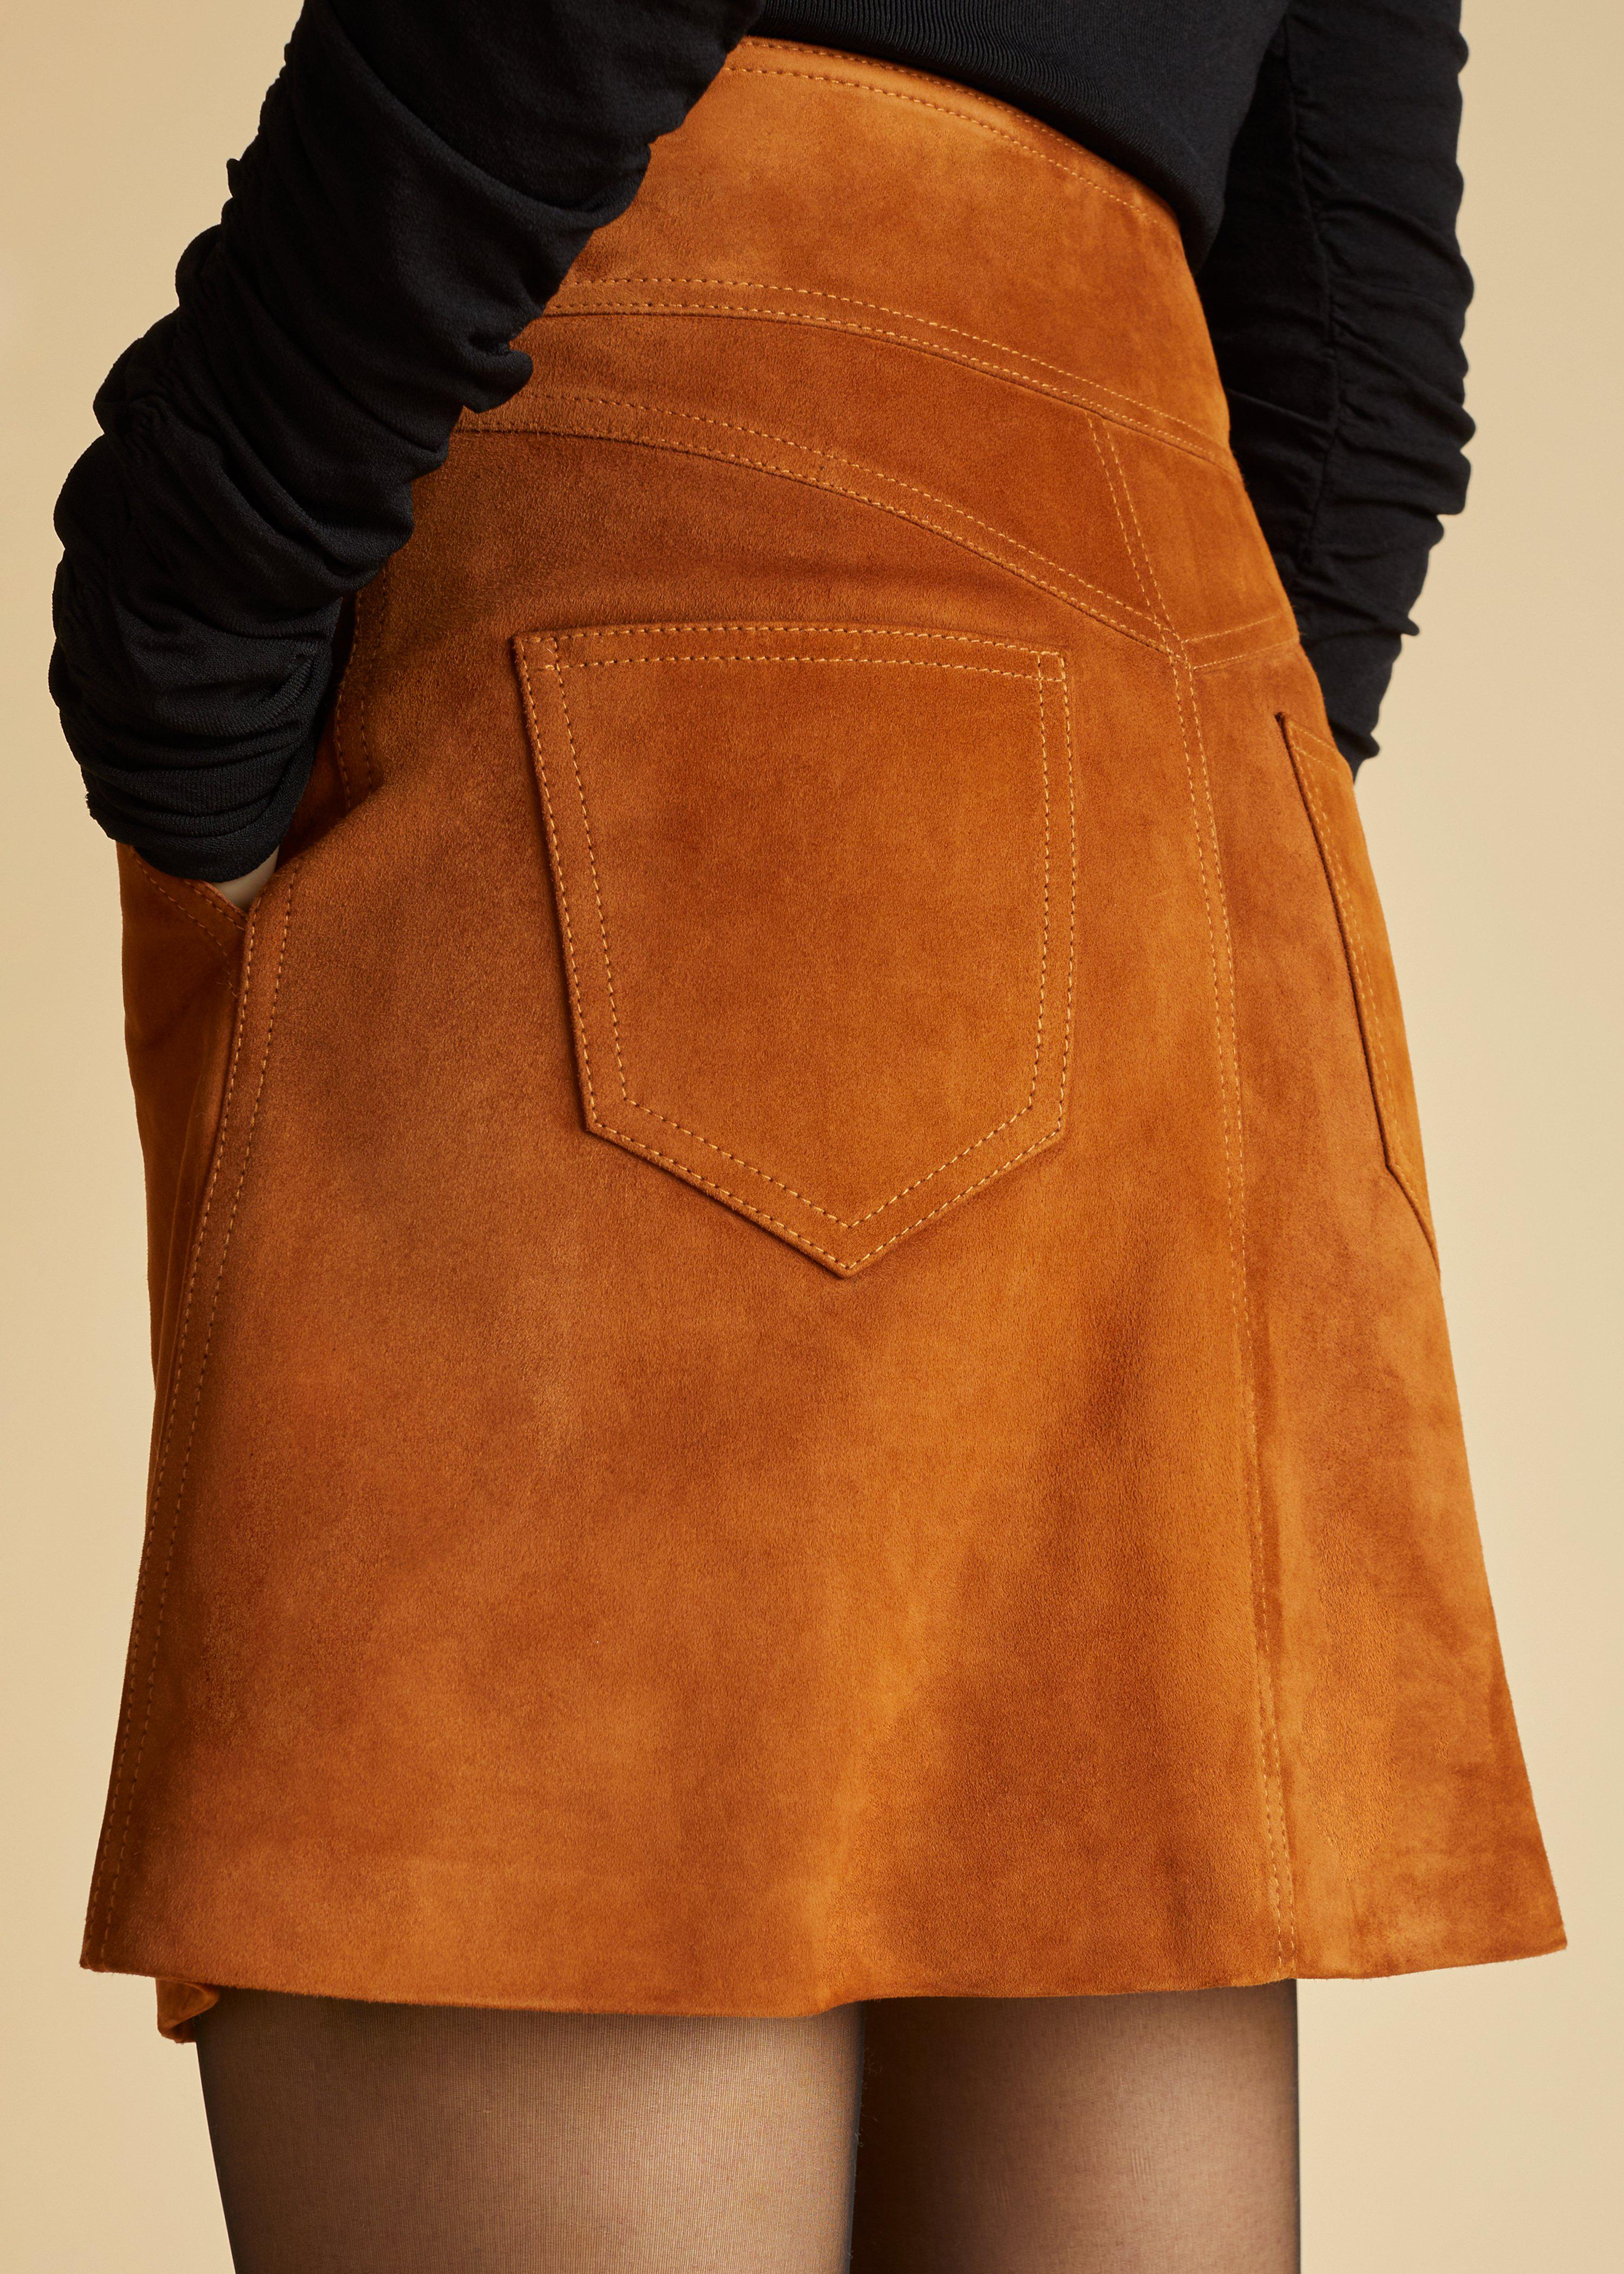 The Giulia Skirt in Chestnut Suede 4